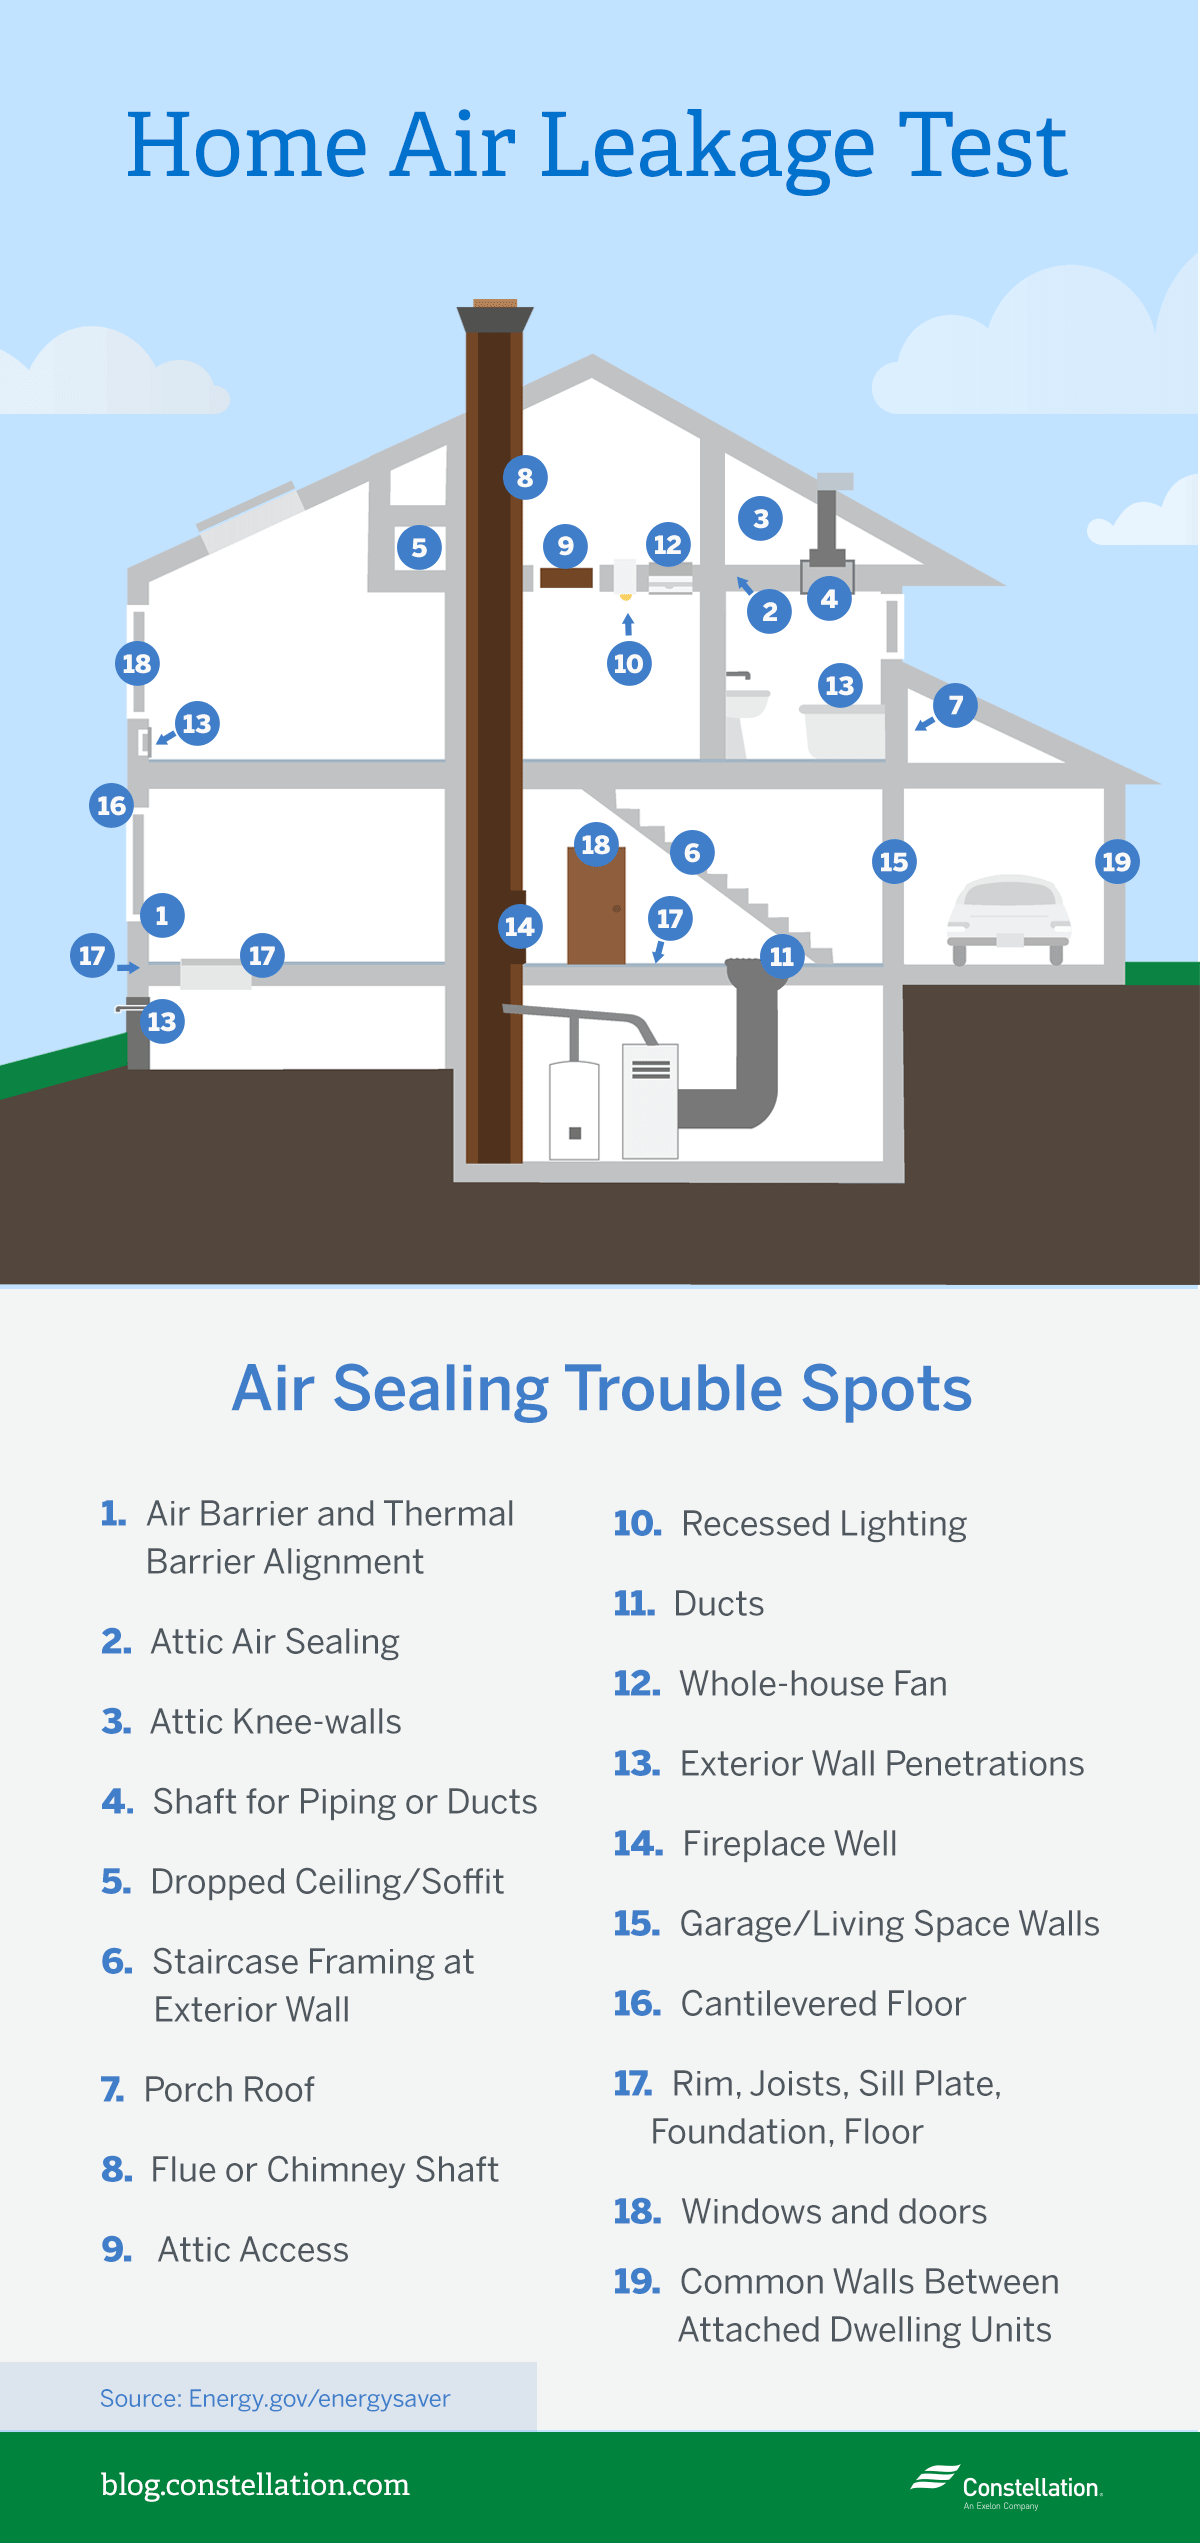 Home Air Leakage Test: Air Sealing Trouble Spots